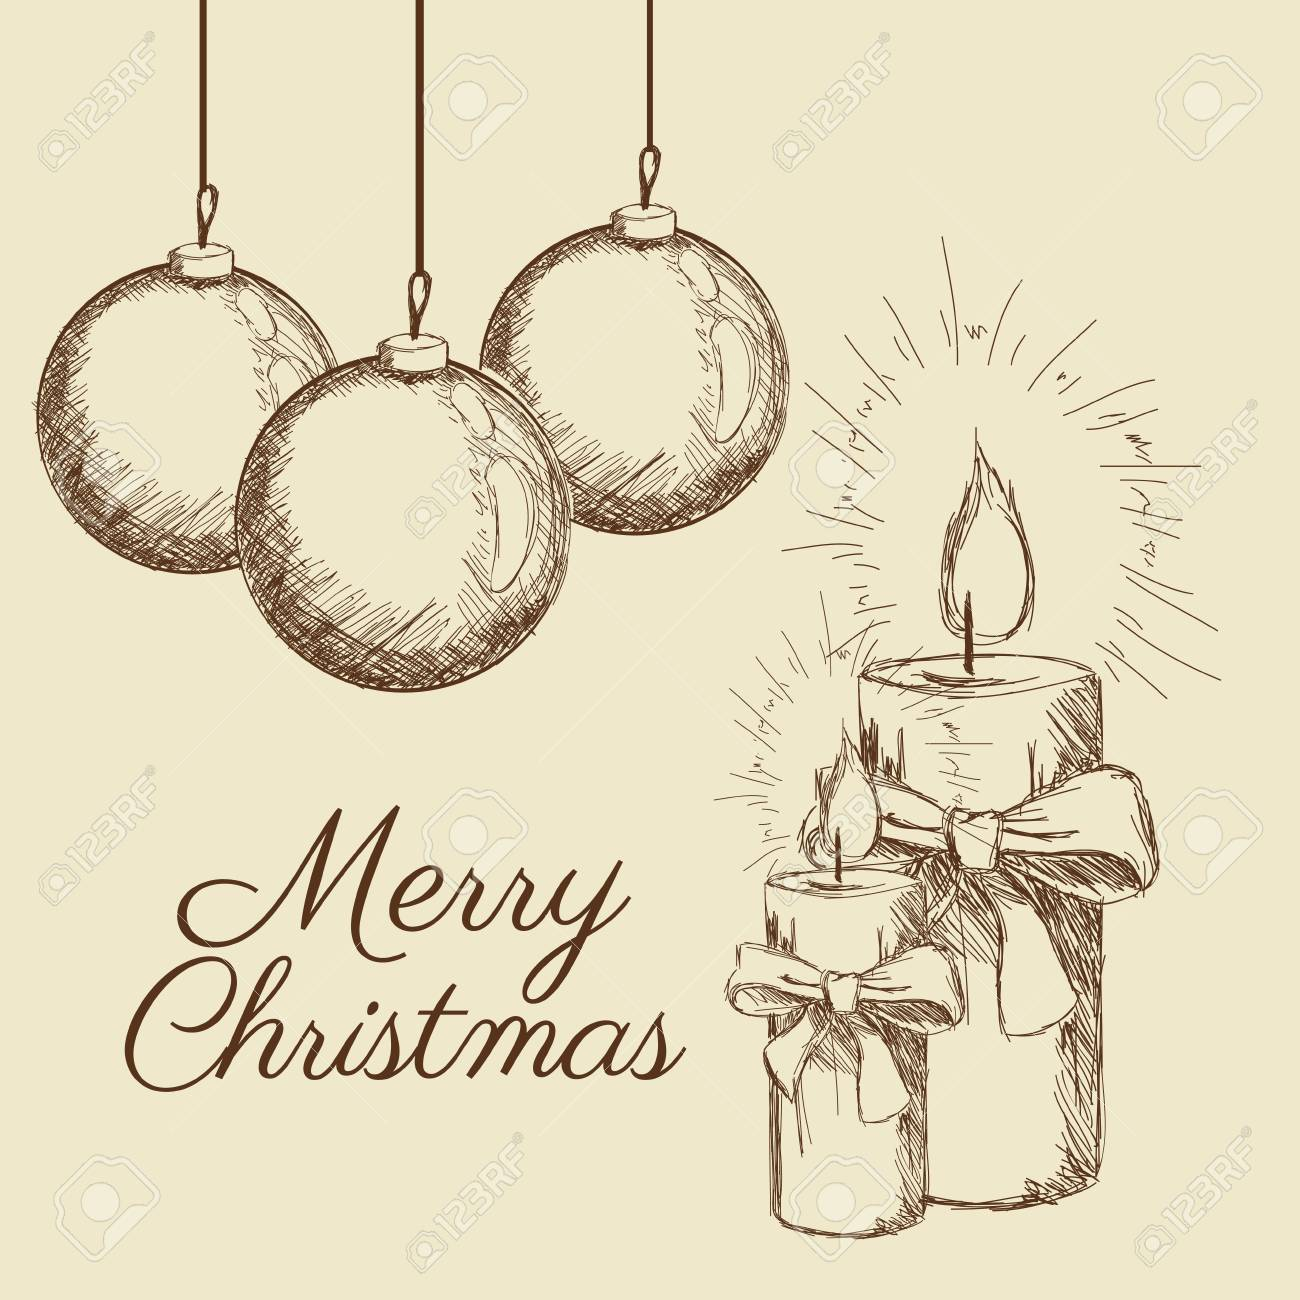 Christmas Celebration Images For Drawing.Candle Sphere Merry Christmas Decoration Celebration Icon Isolated